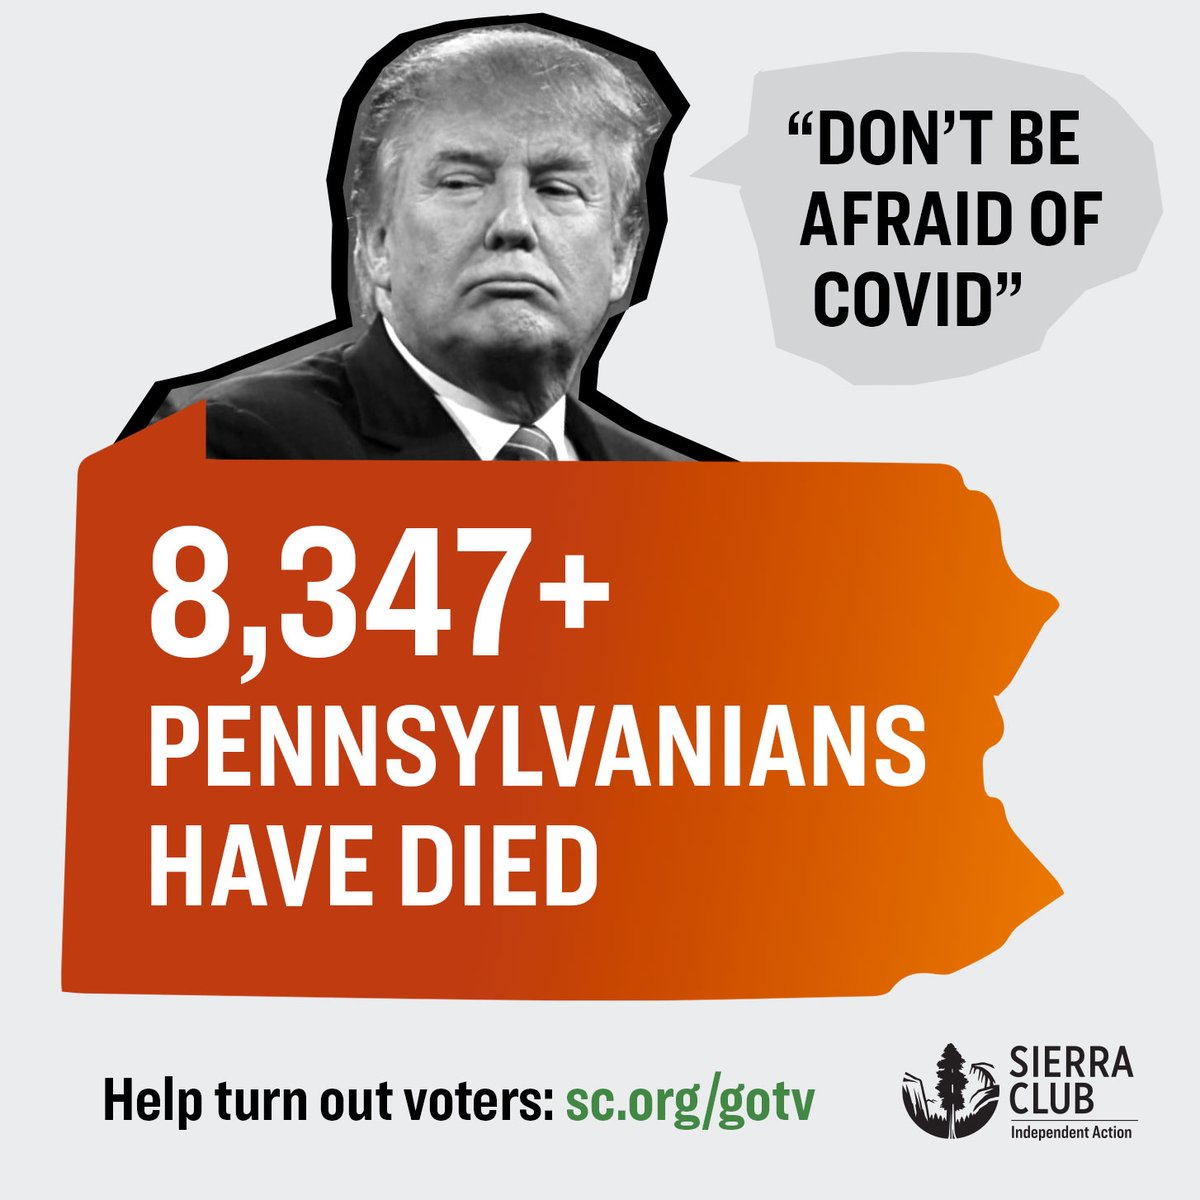 We can't afford four more years of a president who lies and refuses to act on a deadly virus that's killed more than 8,347 Pennsylvanians.  Help turn out voters this election.   #PeoplePlanetPower #vote2020 #pennsylvania